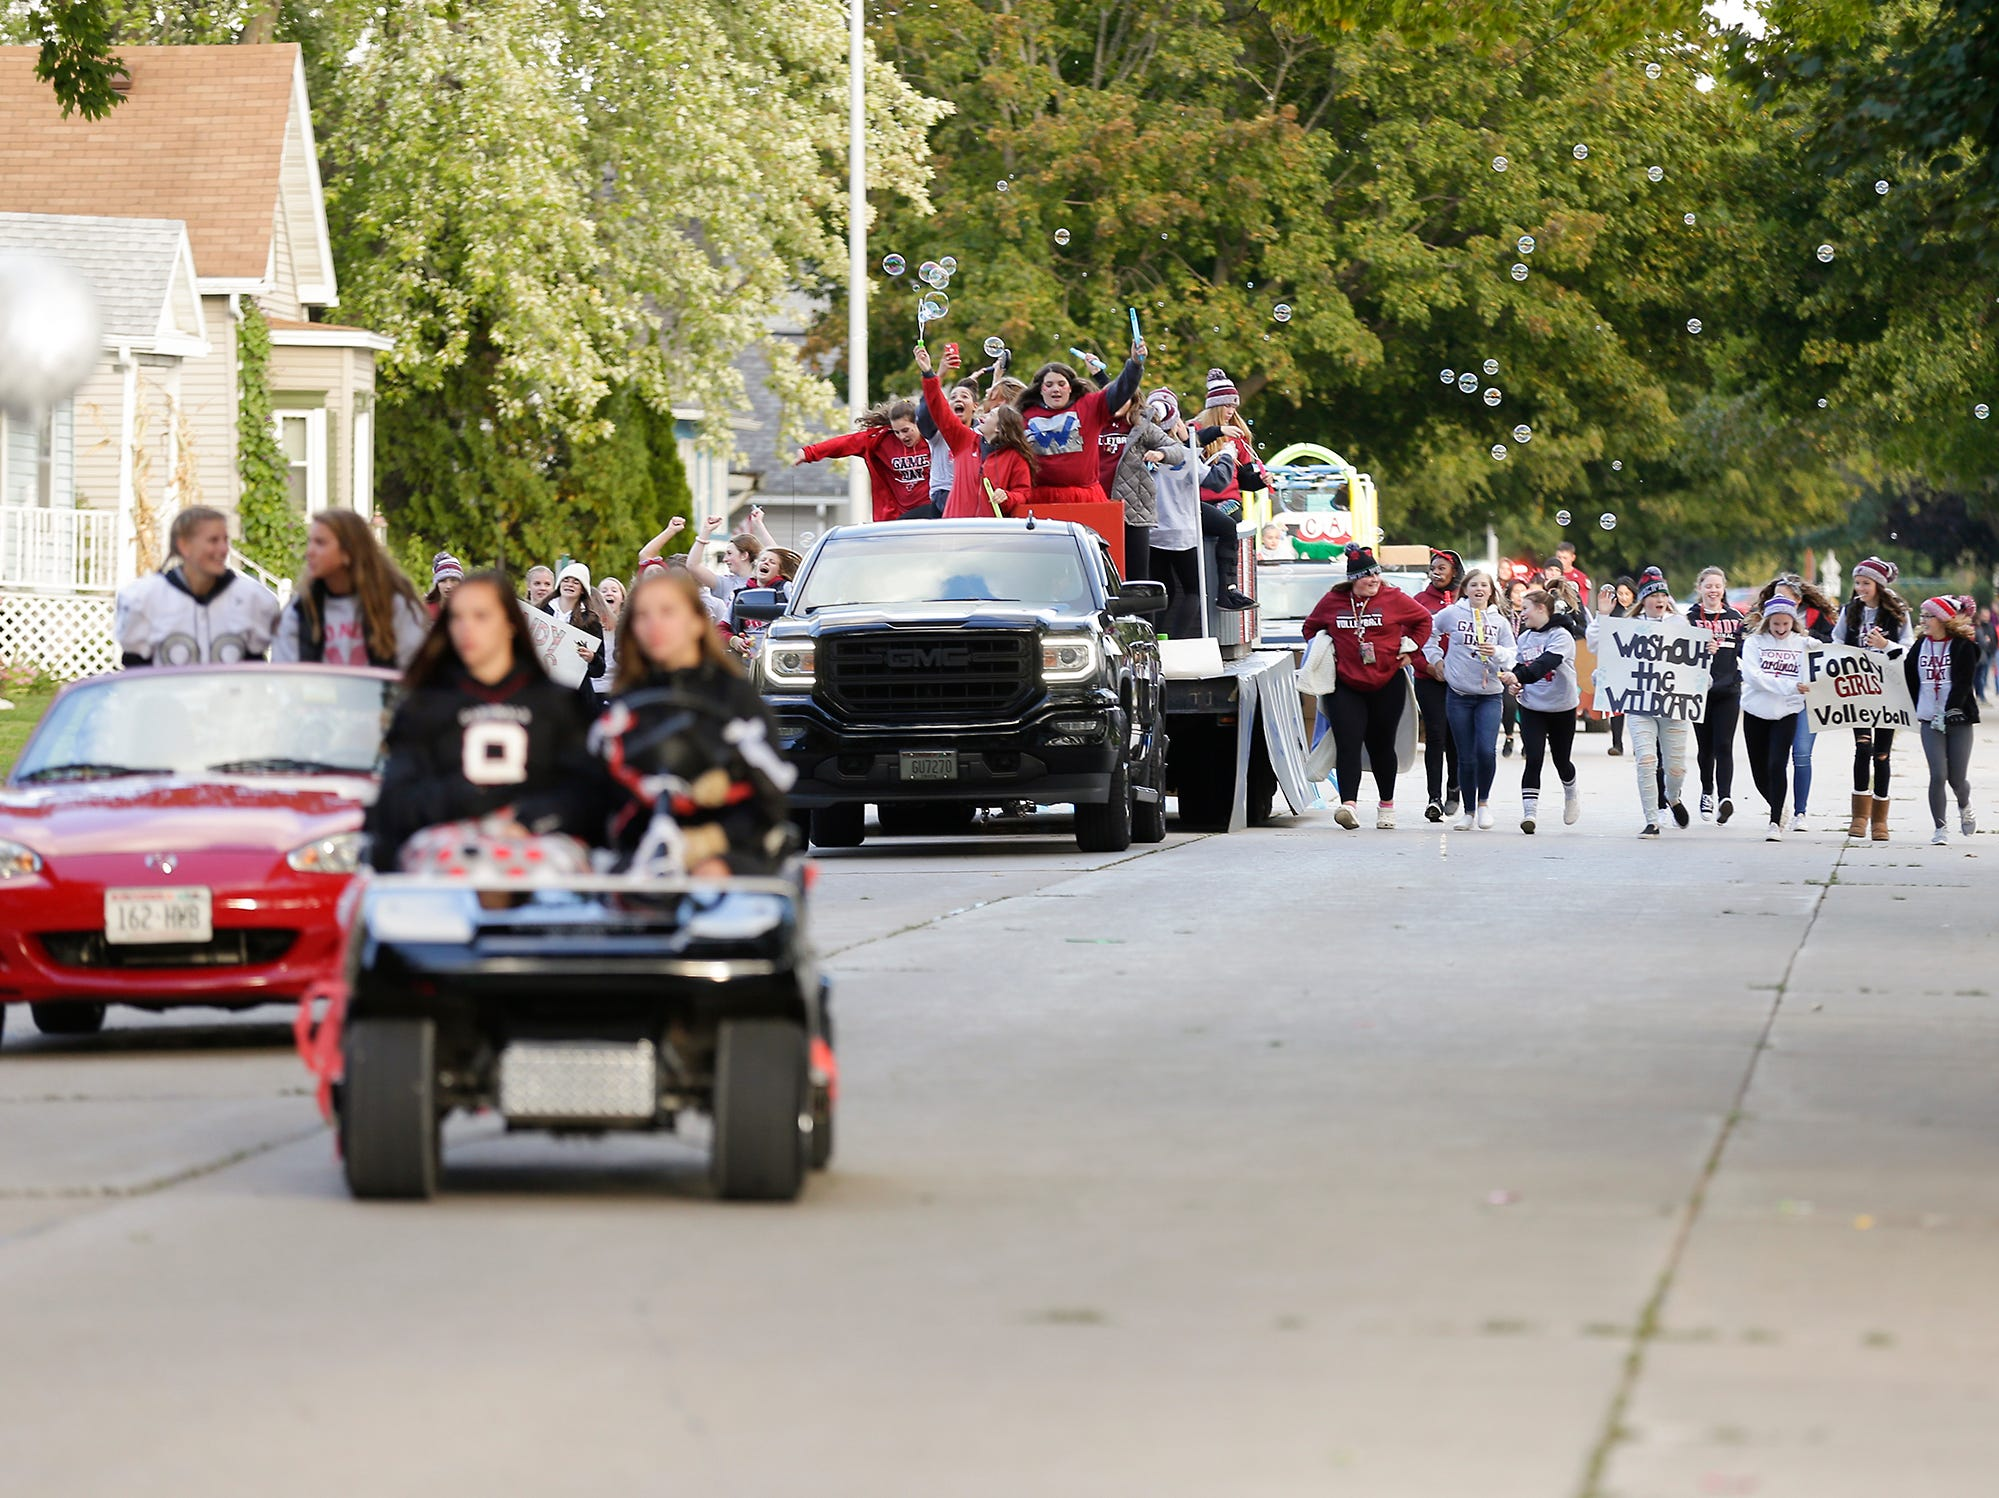 Fond du Lac High School held their football homecoming parade Friday, Sept. 28, 2018, which went down portions of Martin Avenue and Ninth Street in Fond du Lac, Wisconsin.